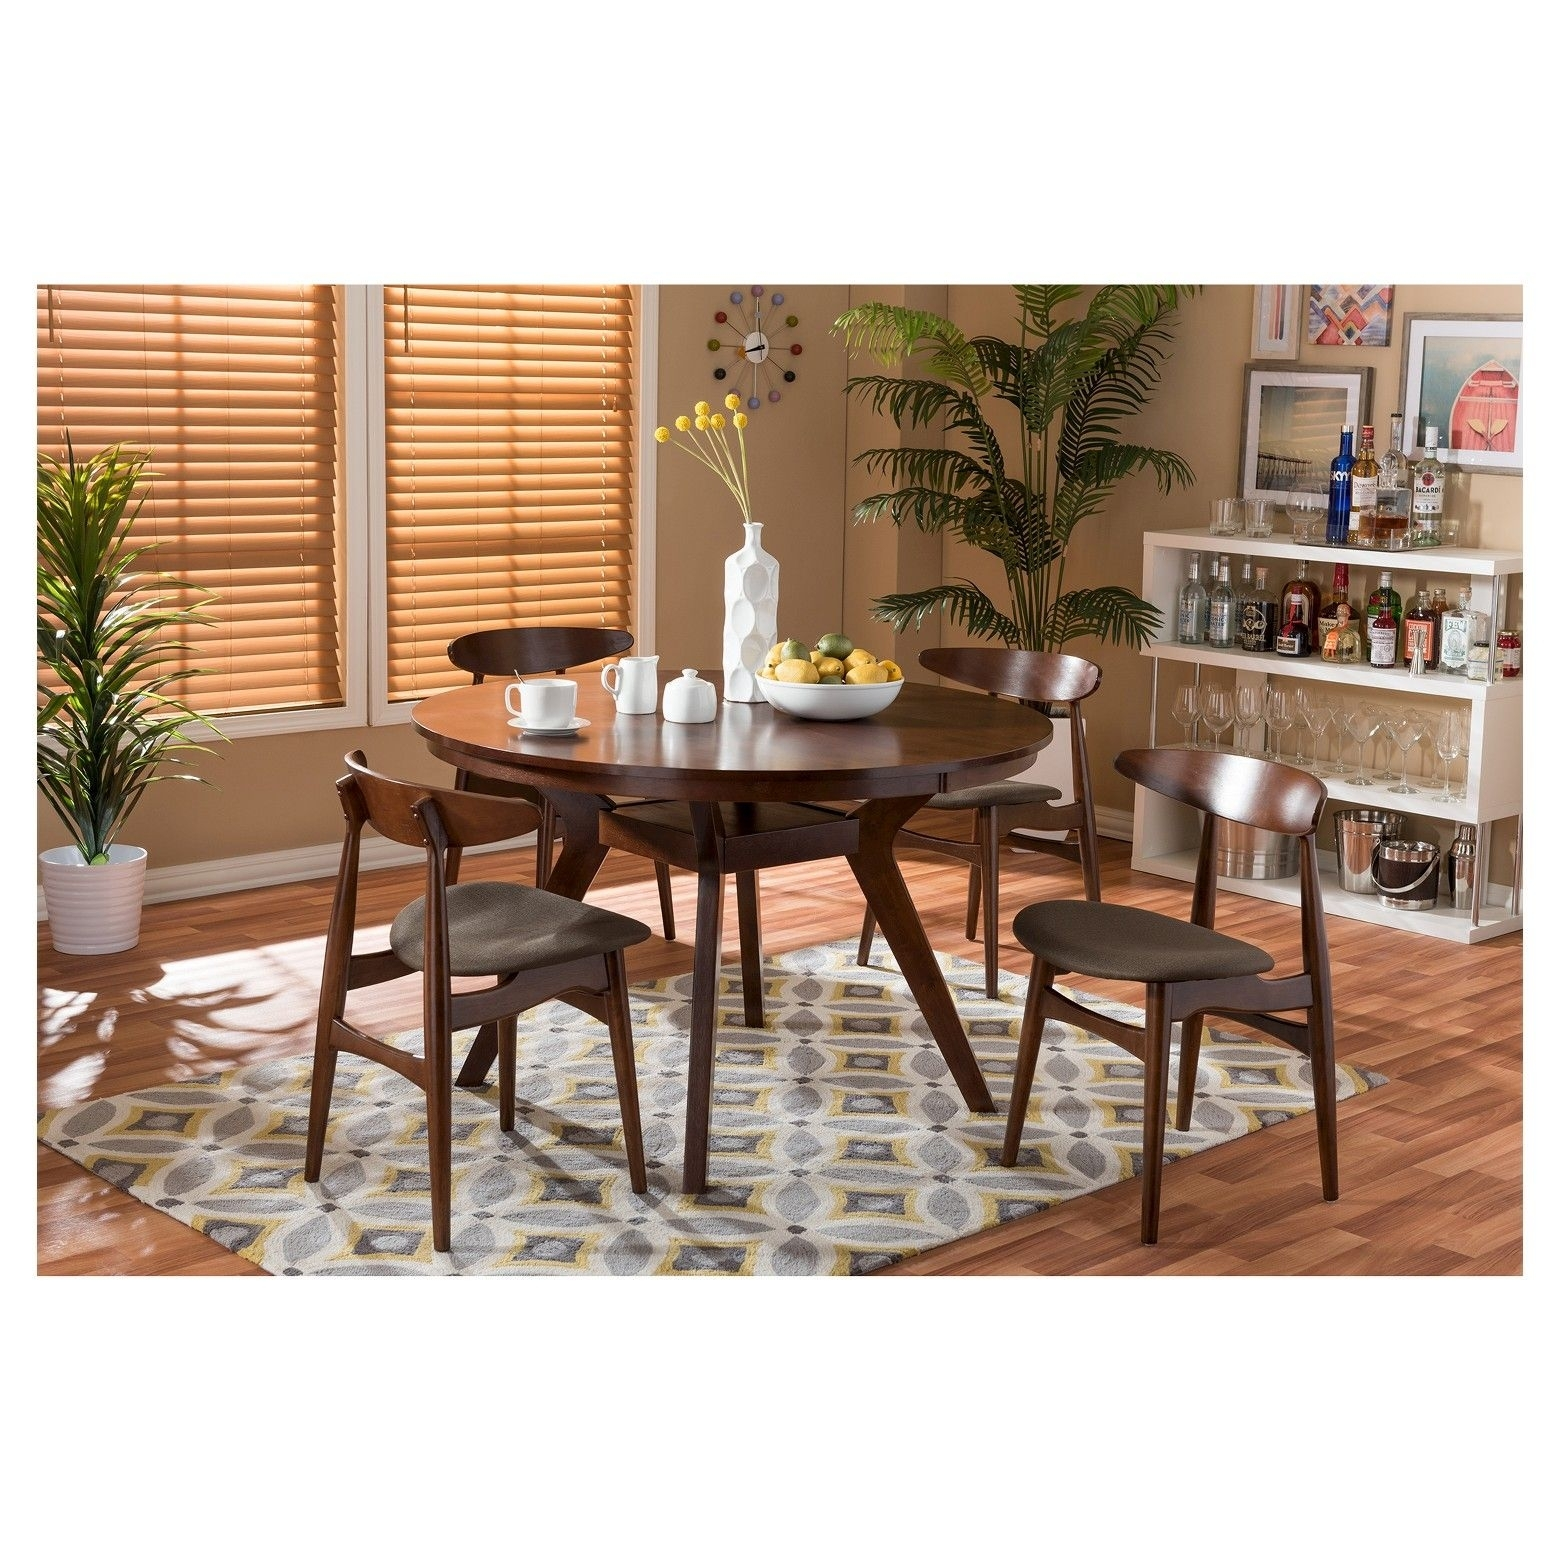 The Flamingo 5 Piece Dining Set Includes A 4 Ft (Image 20 of 20)